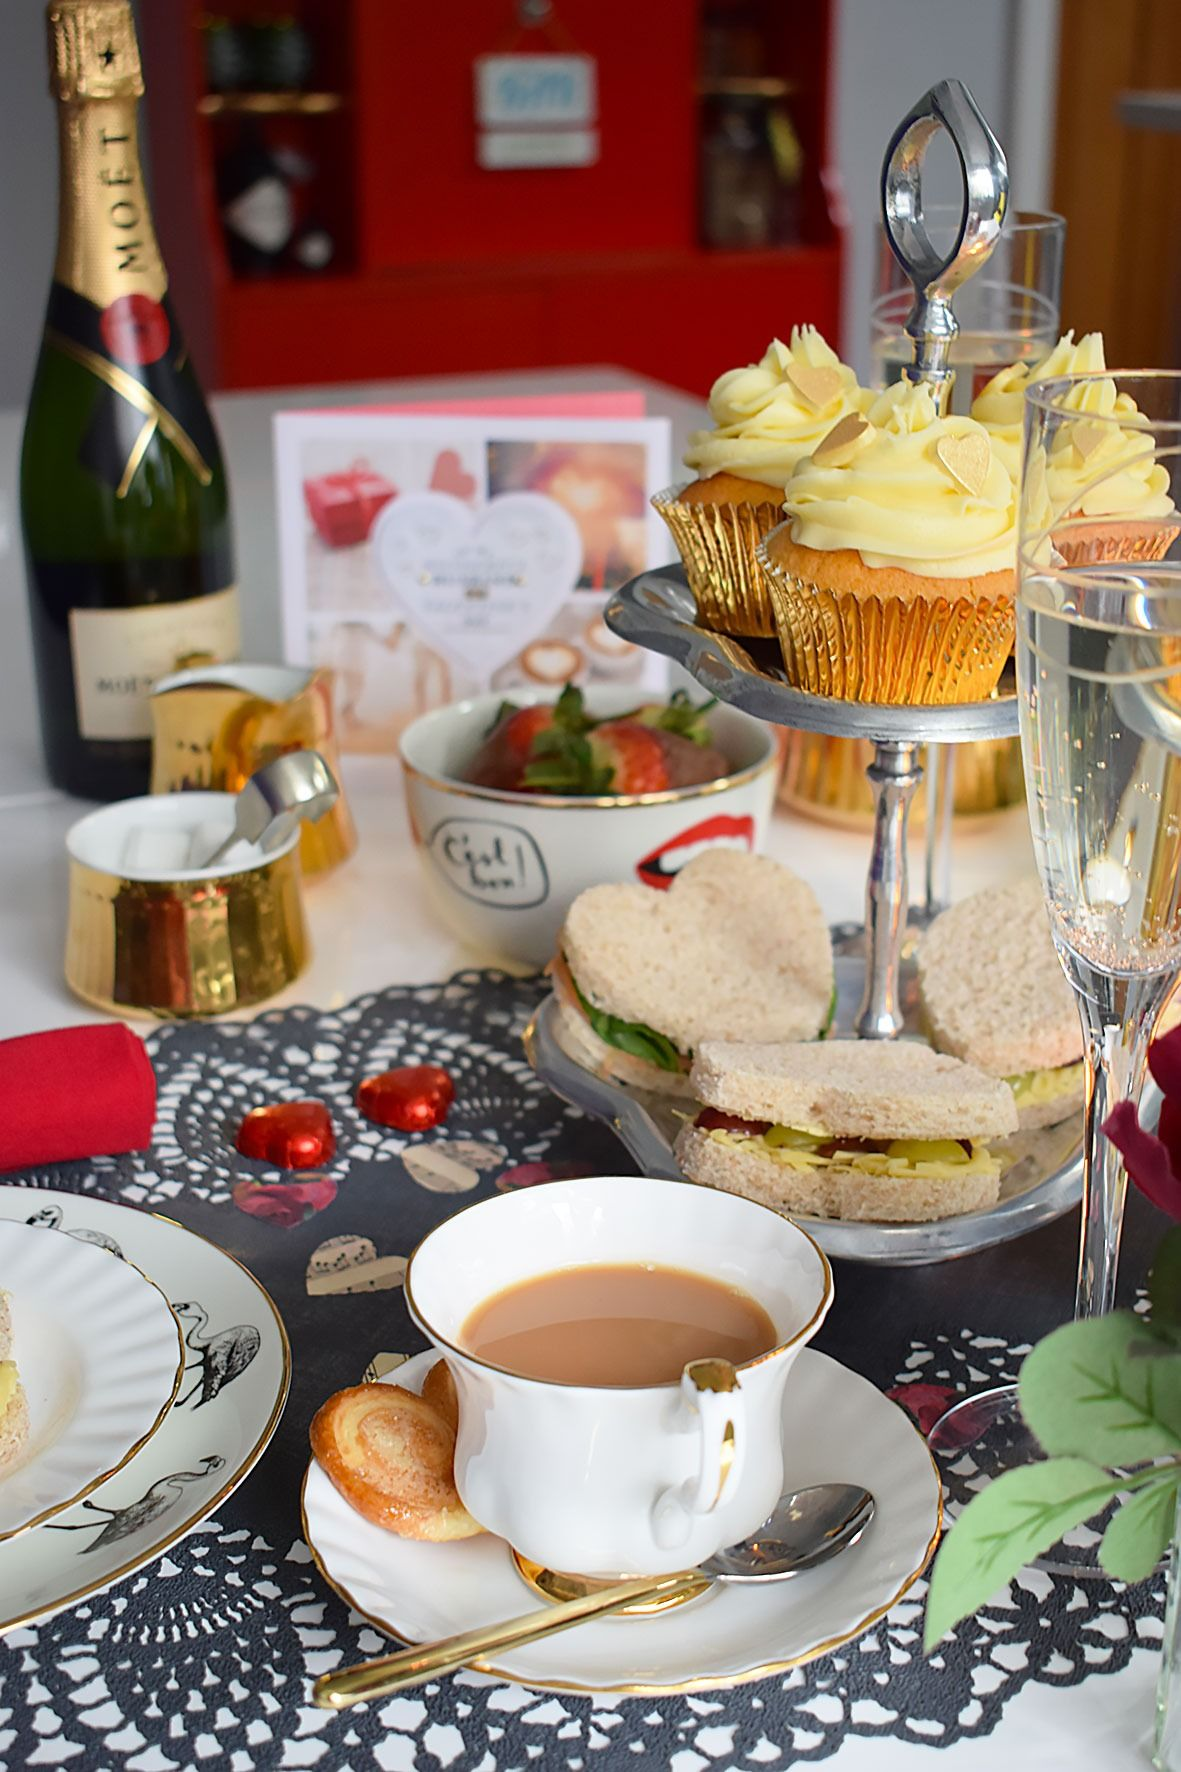 Valentine\'s Tea Table Inspiration: Glam and Vintage | Romantic table ...